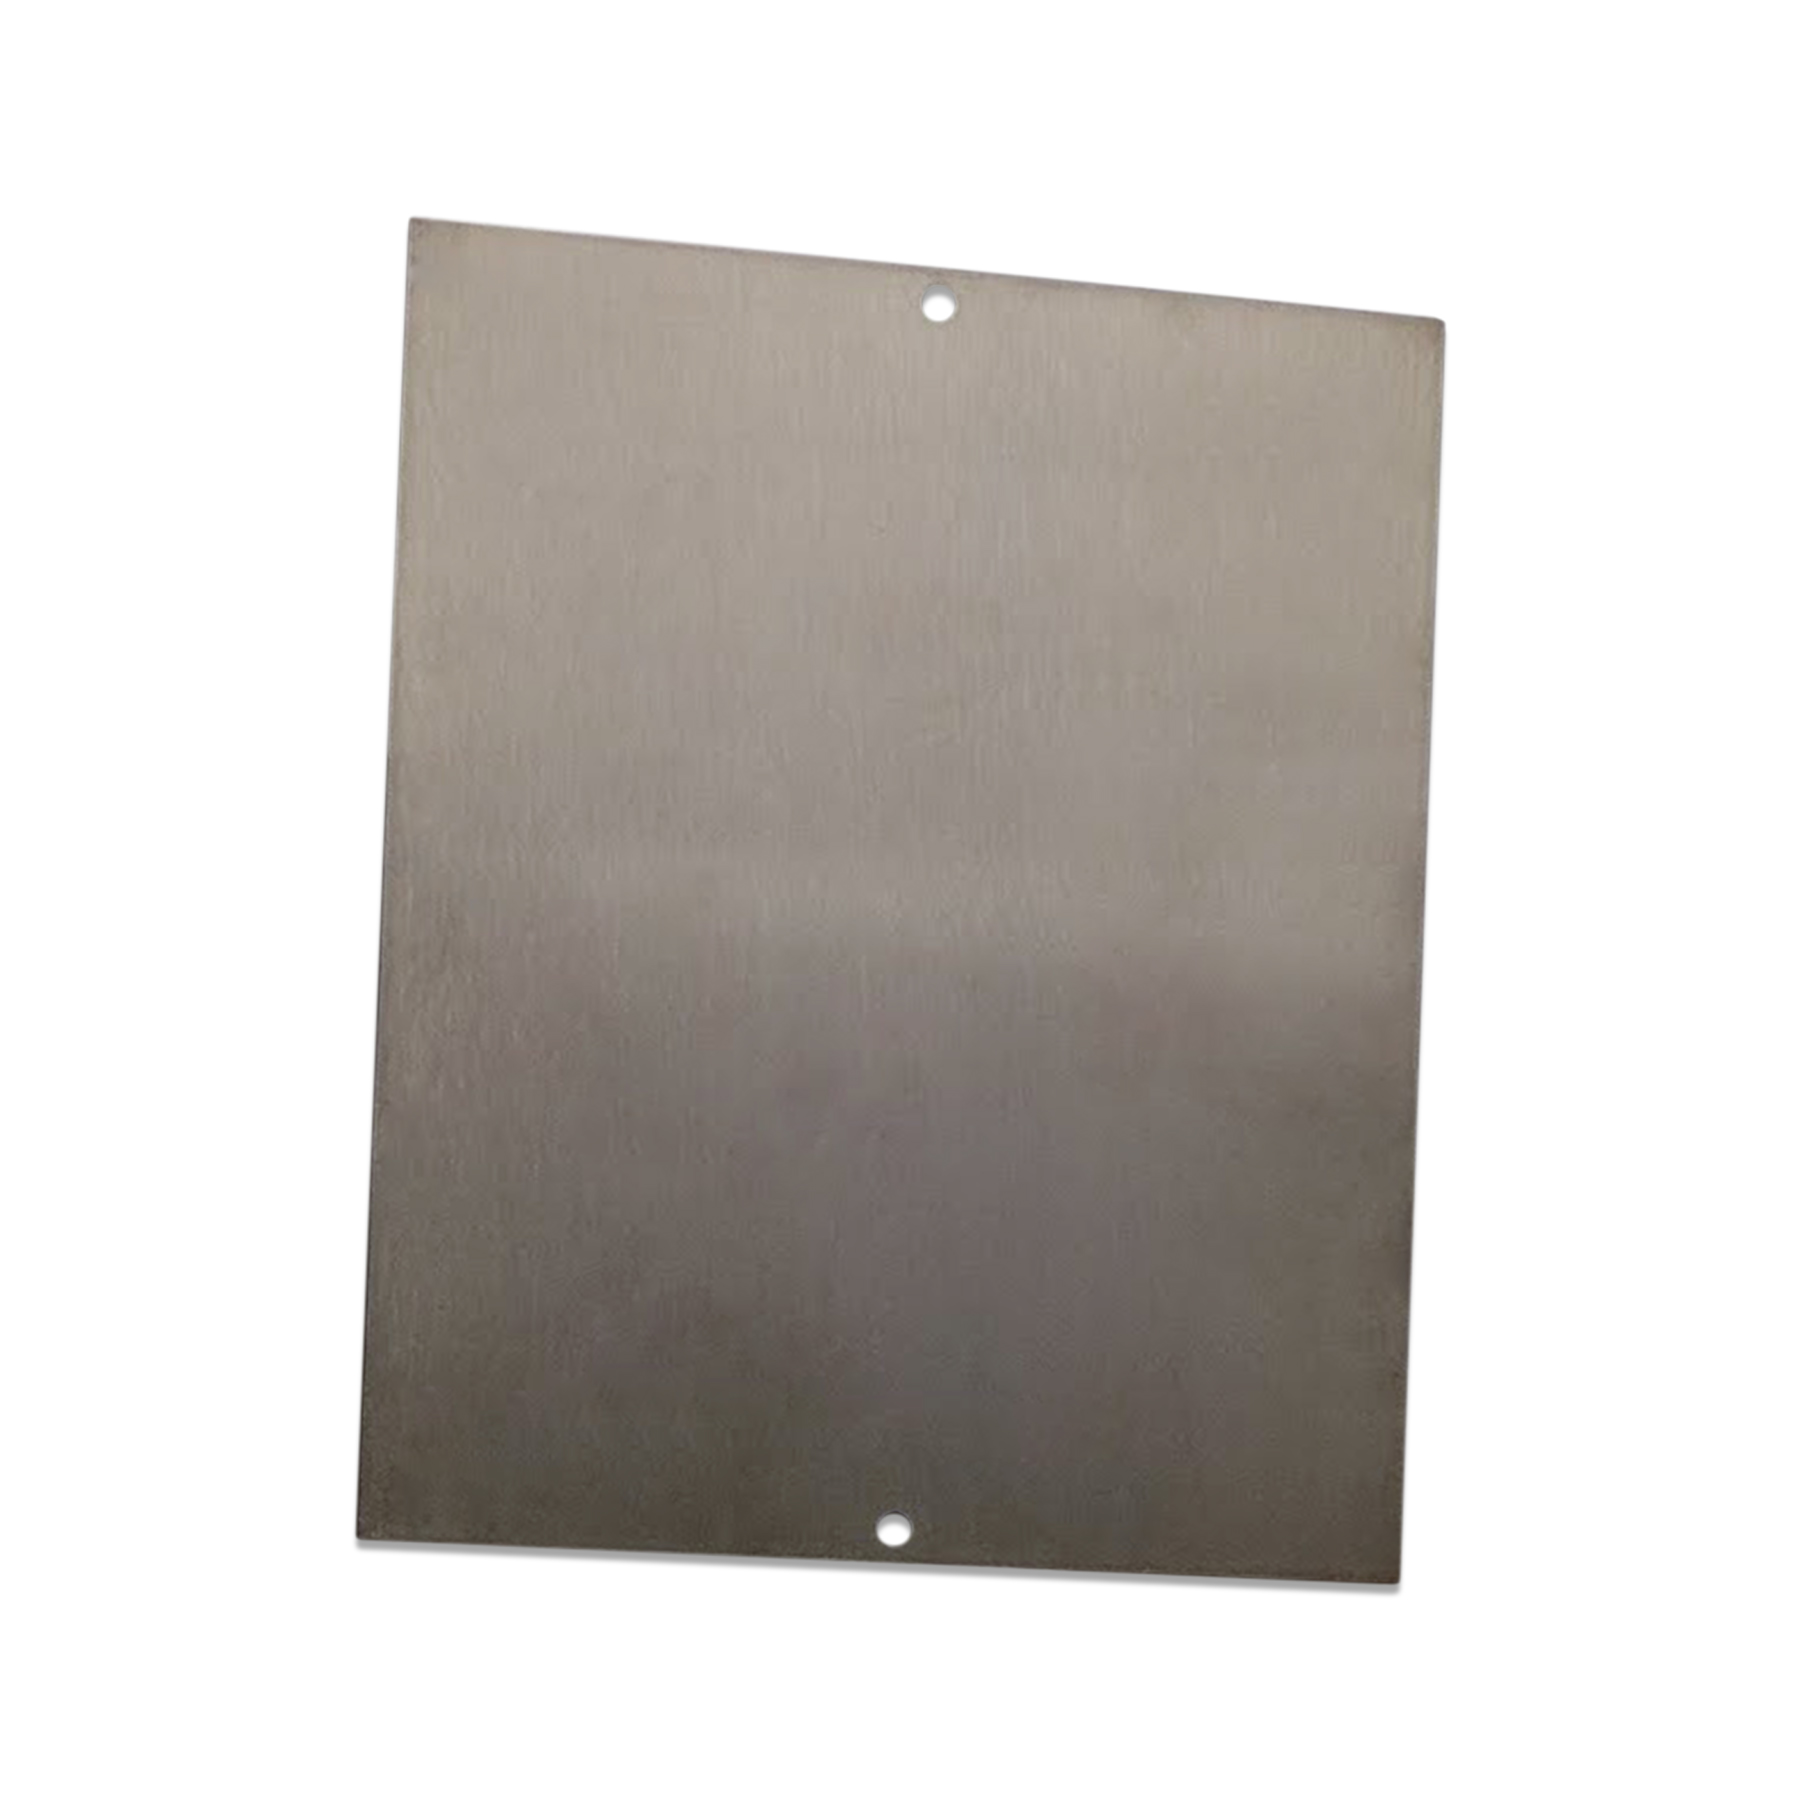 Stainless Steel Thermostat Access Cover